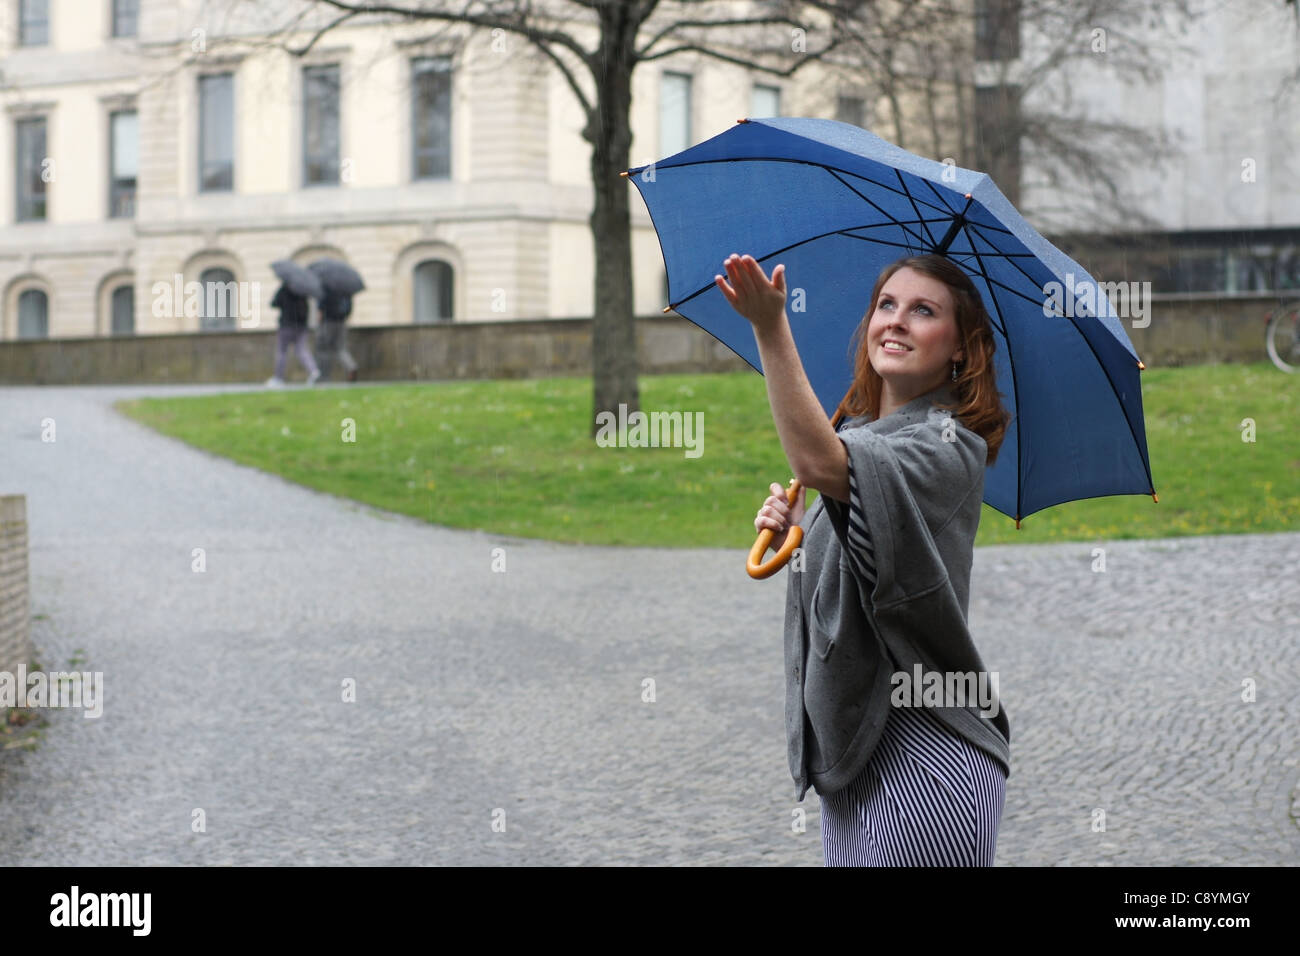 young woman with umbrella enjoying the rain - Stock Image